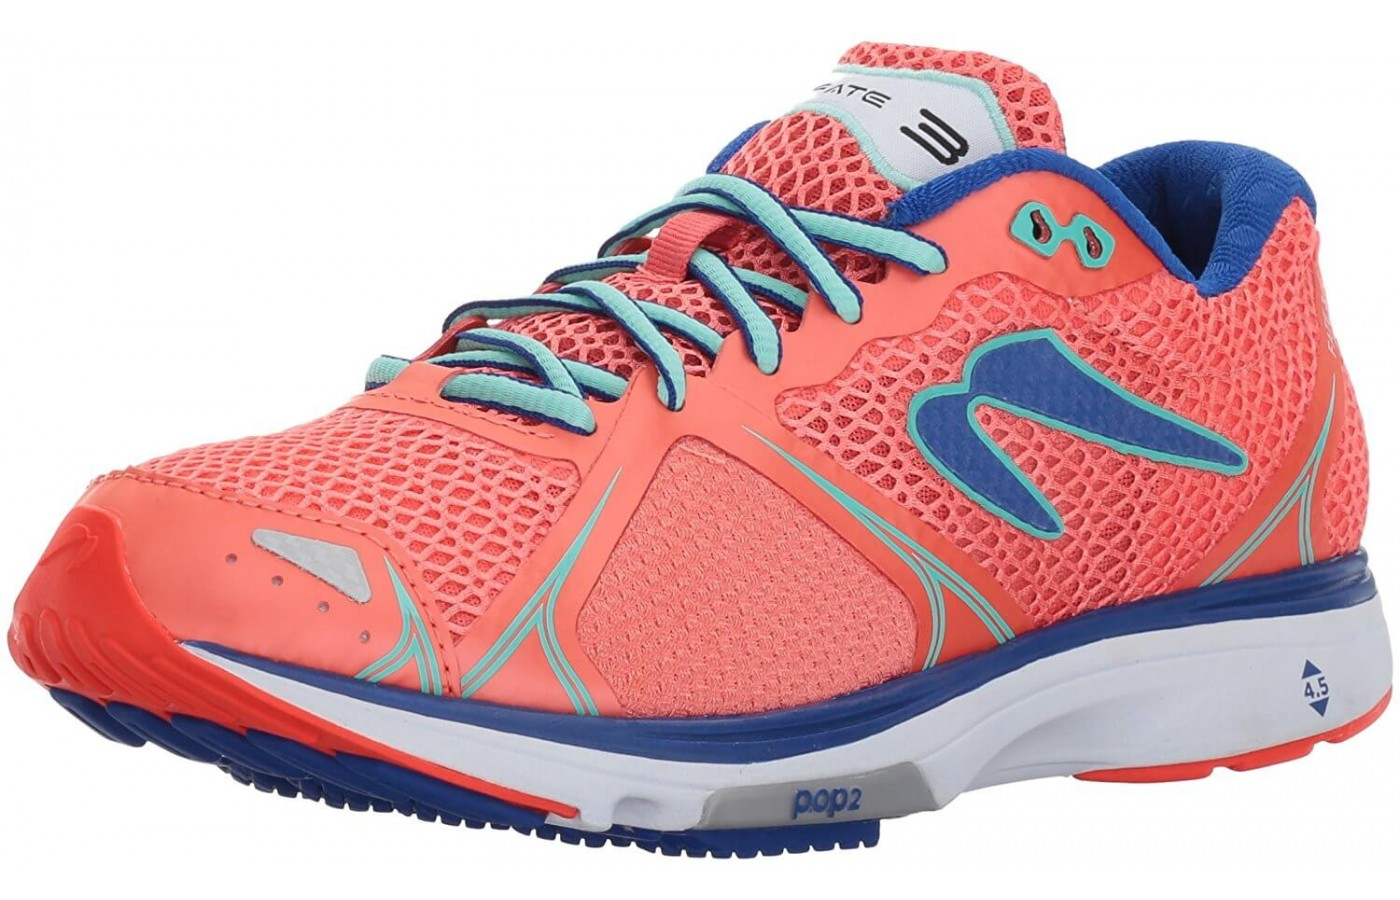 The Newton Fate 3 features Newtonium cushioning